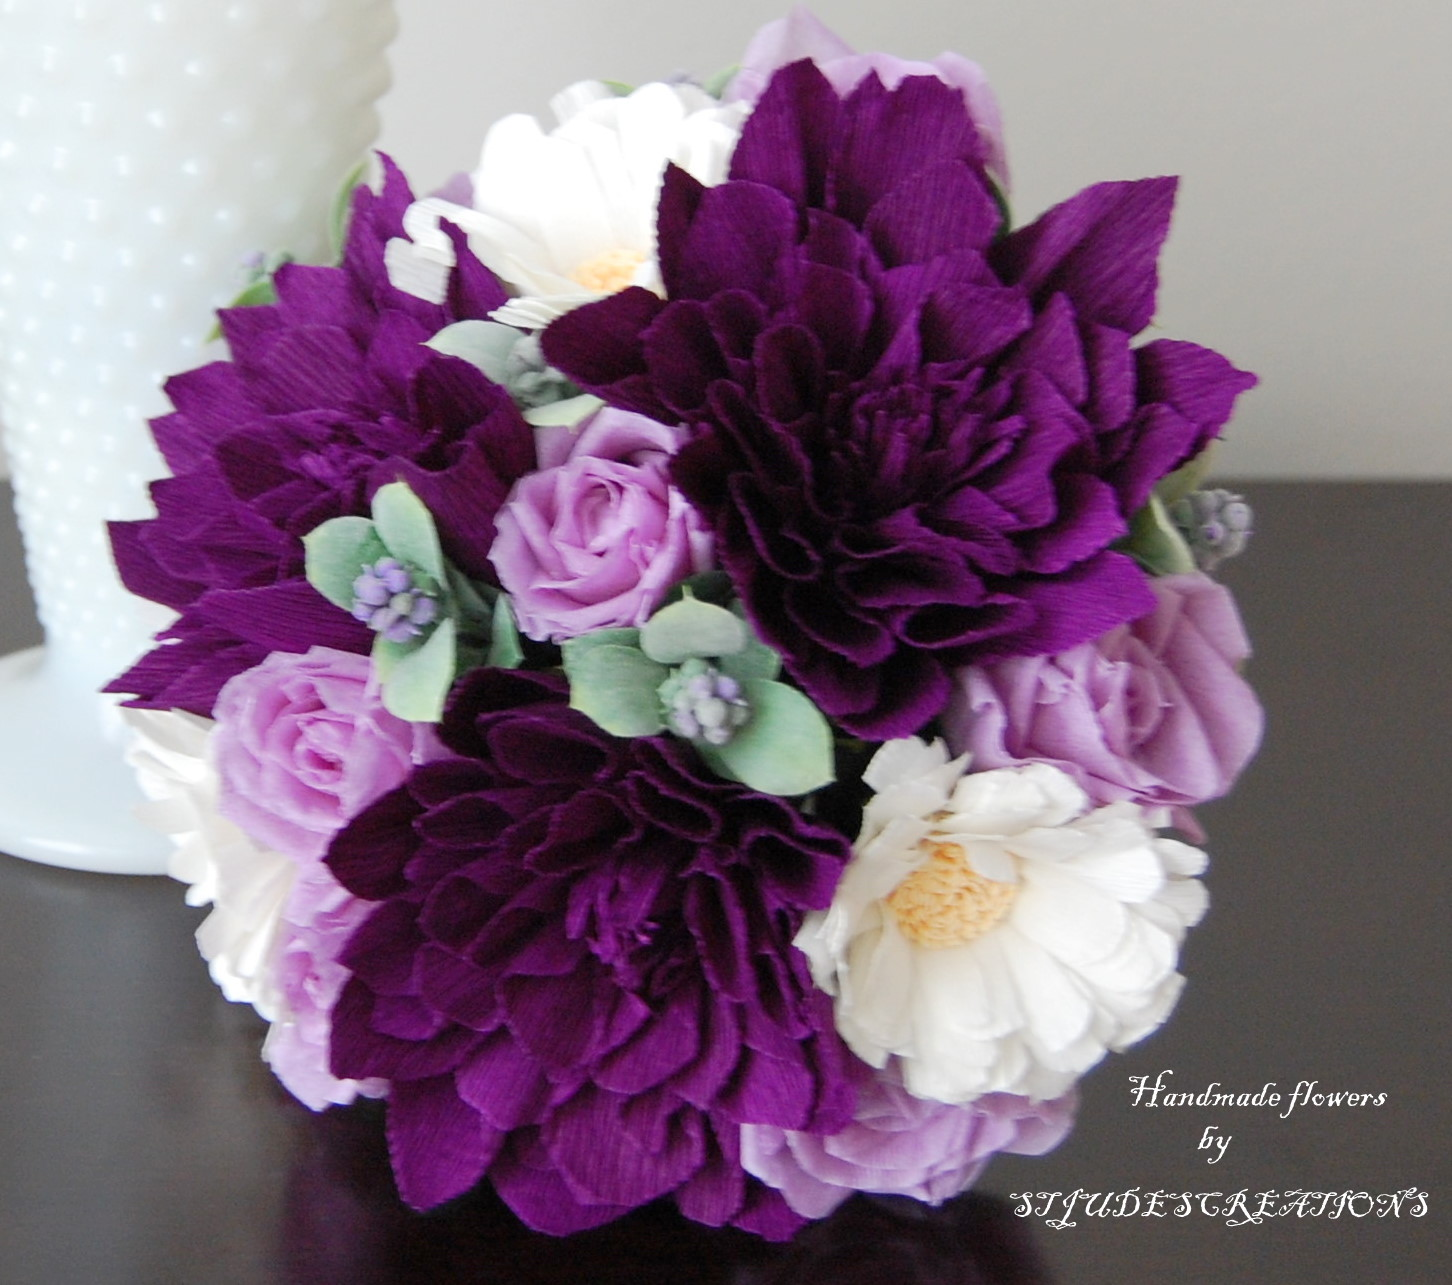 Felt Purple Dahlias Lavender Bud Roses And White Gerber Daisies Went Well Together I Had This Berry Filler It With That Addded